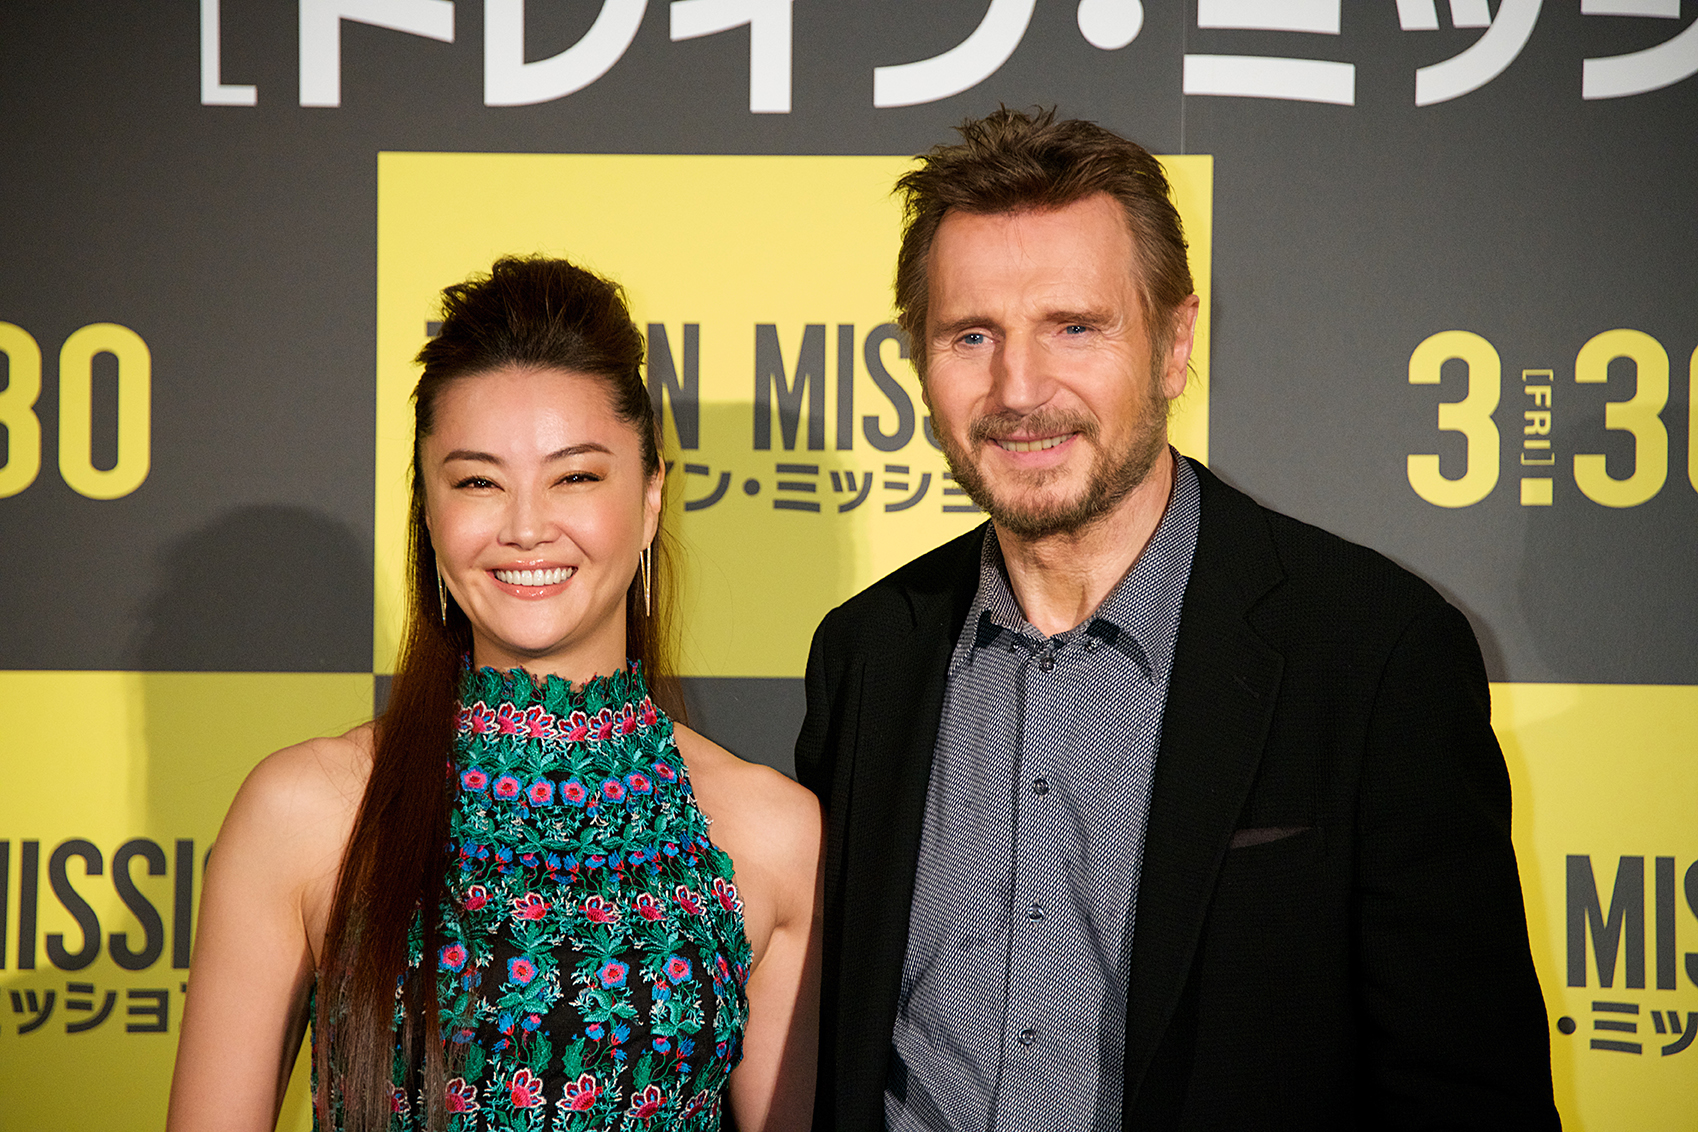 Liam Neeson Promotes 'The Commuter' in Japan